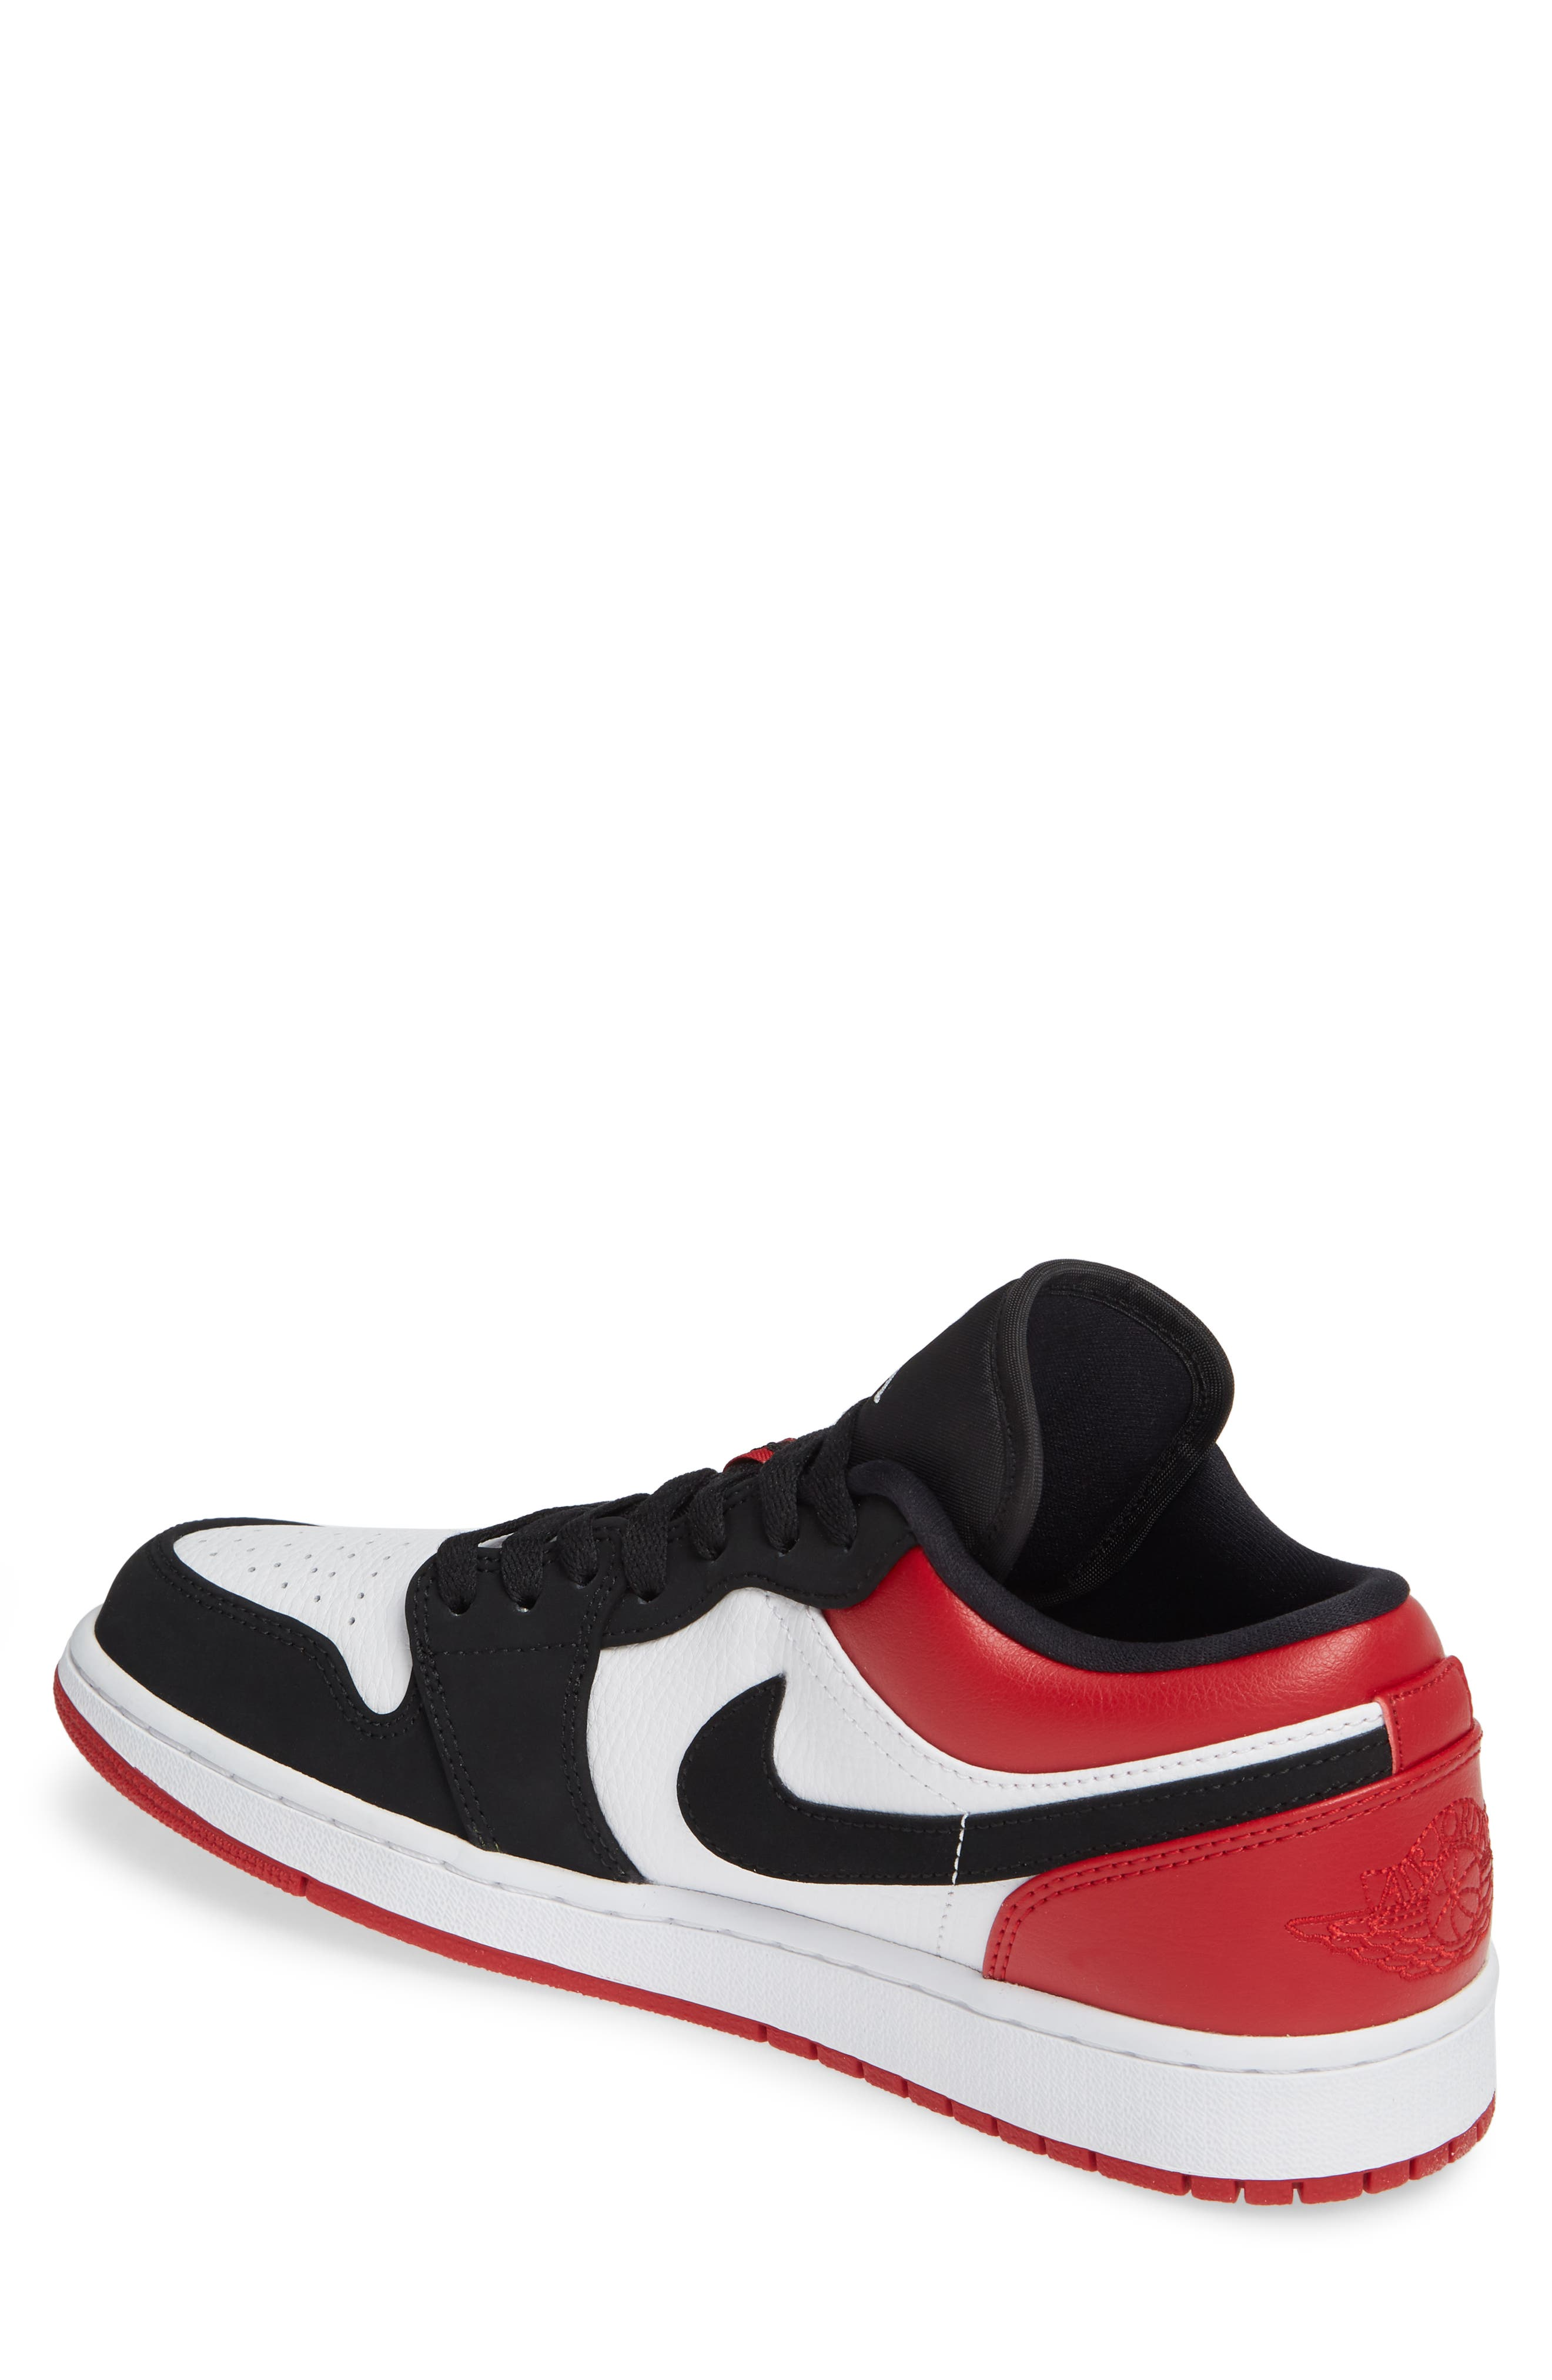 save off 8c84f f34ac Men s Nike Shoes, Clothing   Accessories   Nordstrom